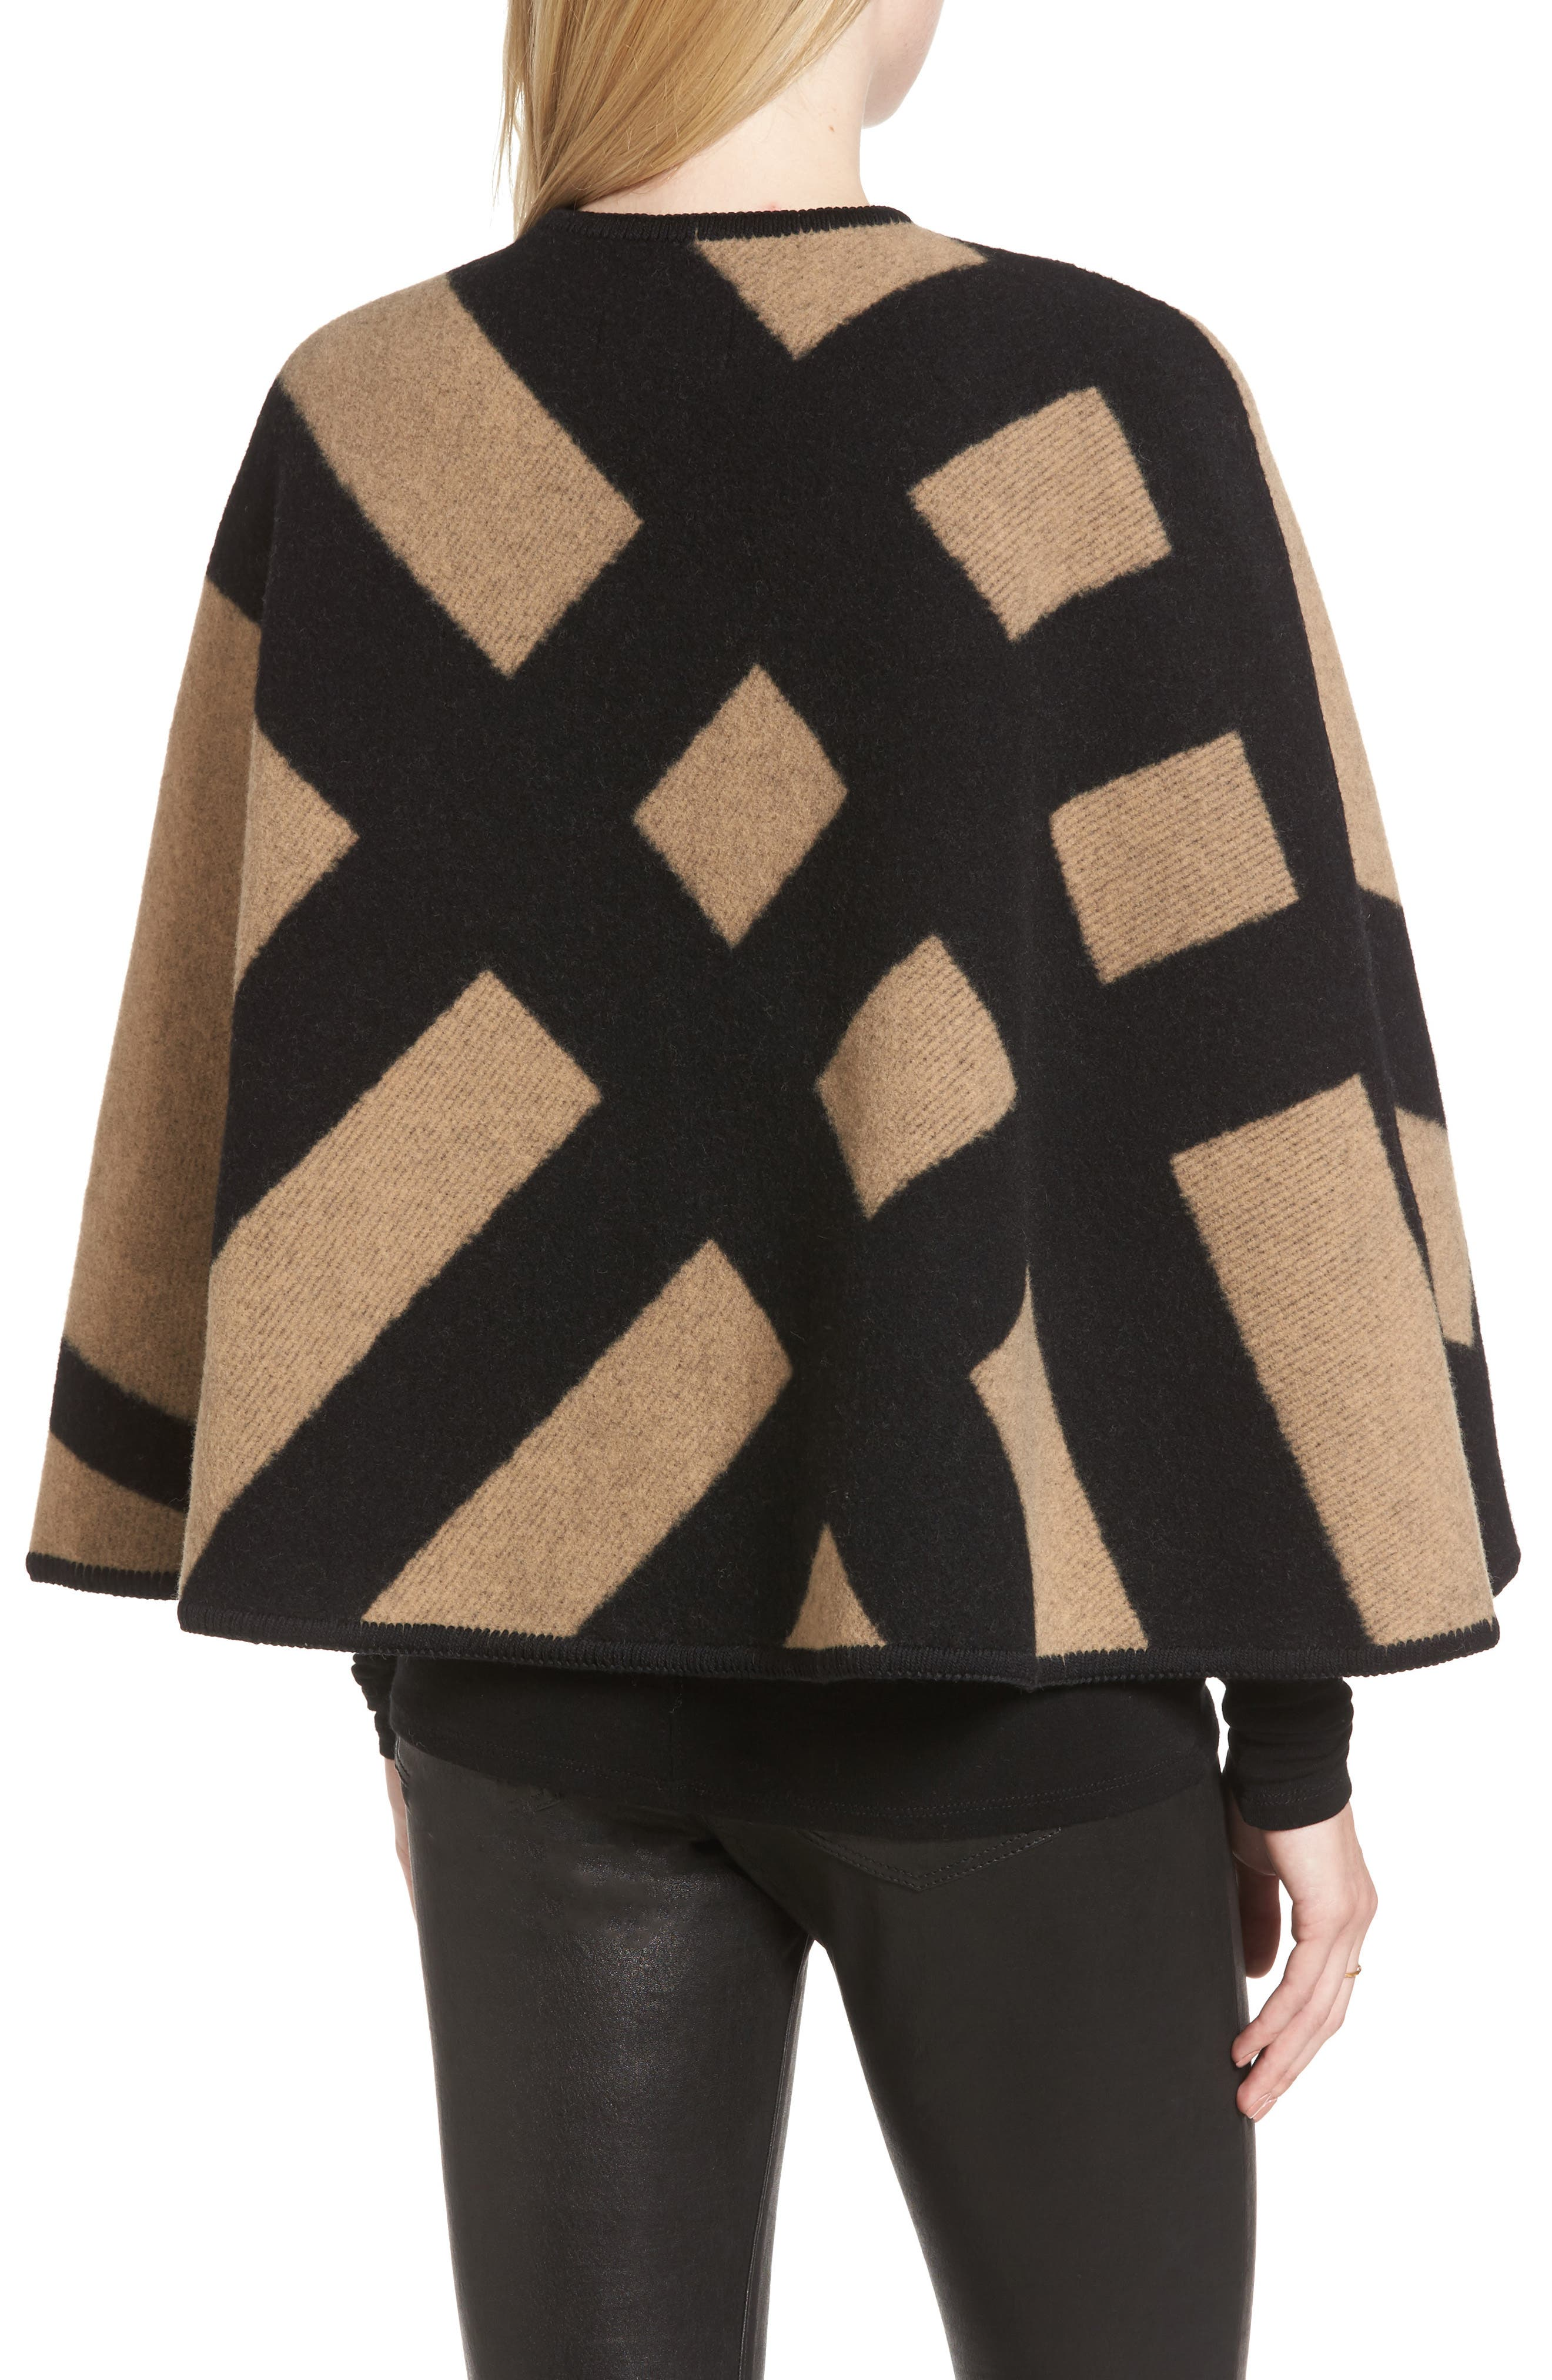 Blanket Check Wool & Cashmere Poncho,                             Alternate thumbnail 2, color,                             Camel/ Black